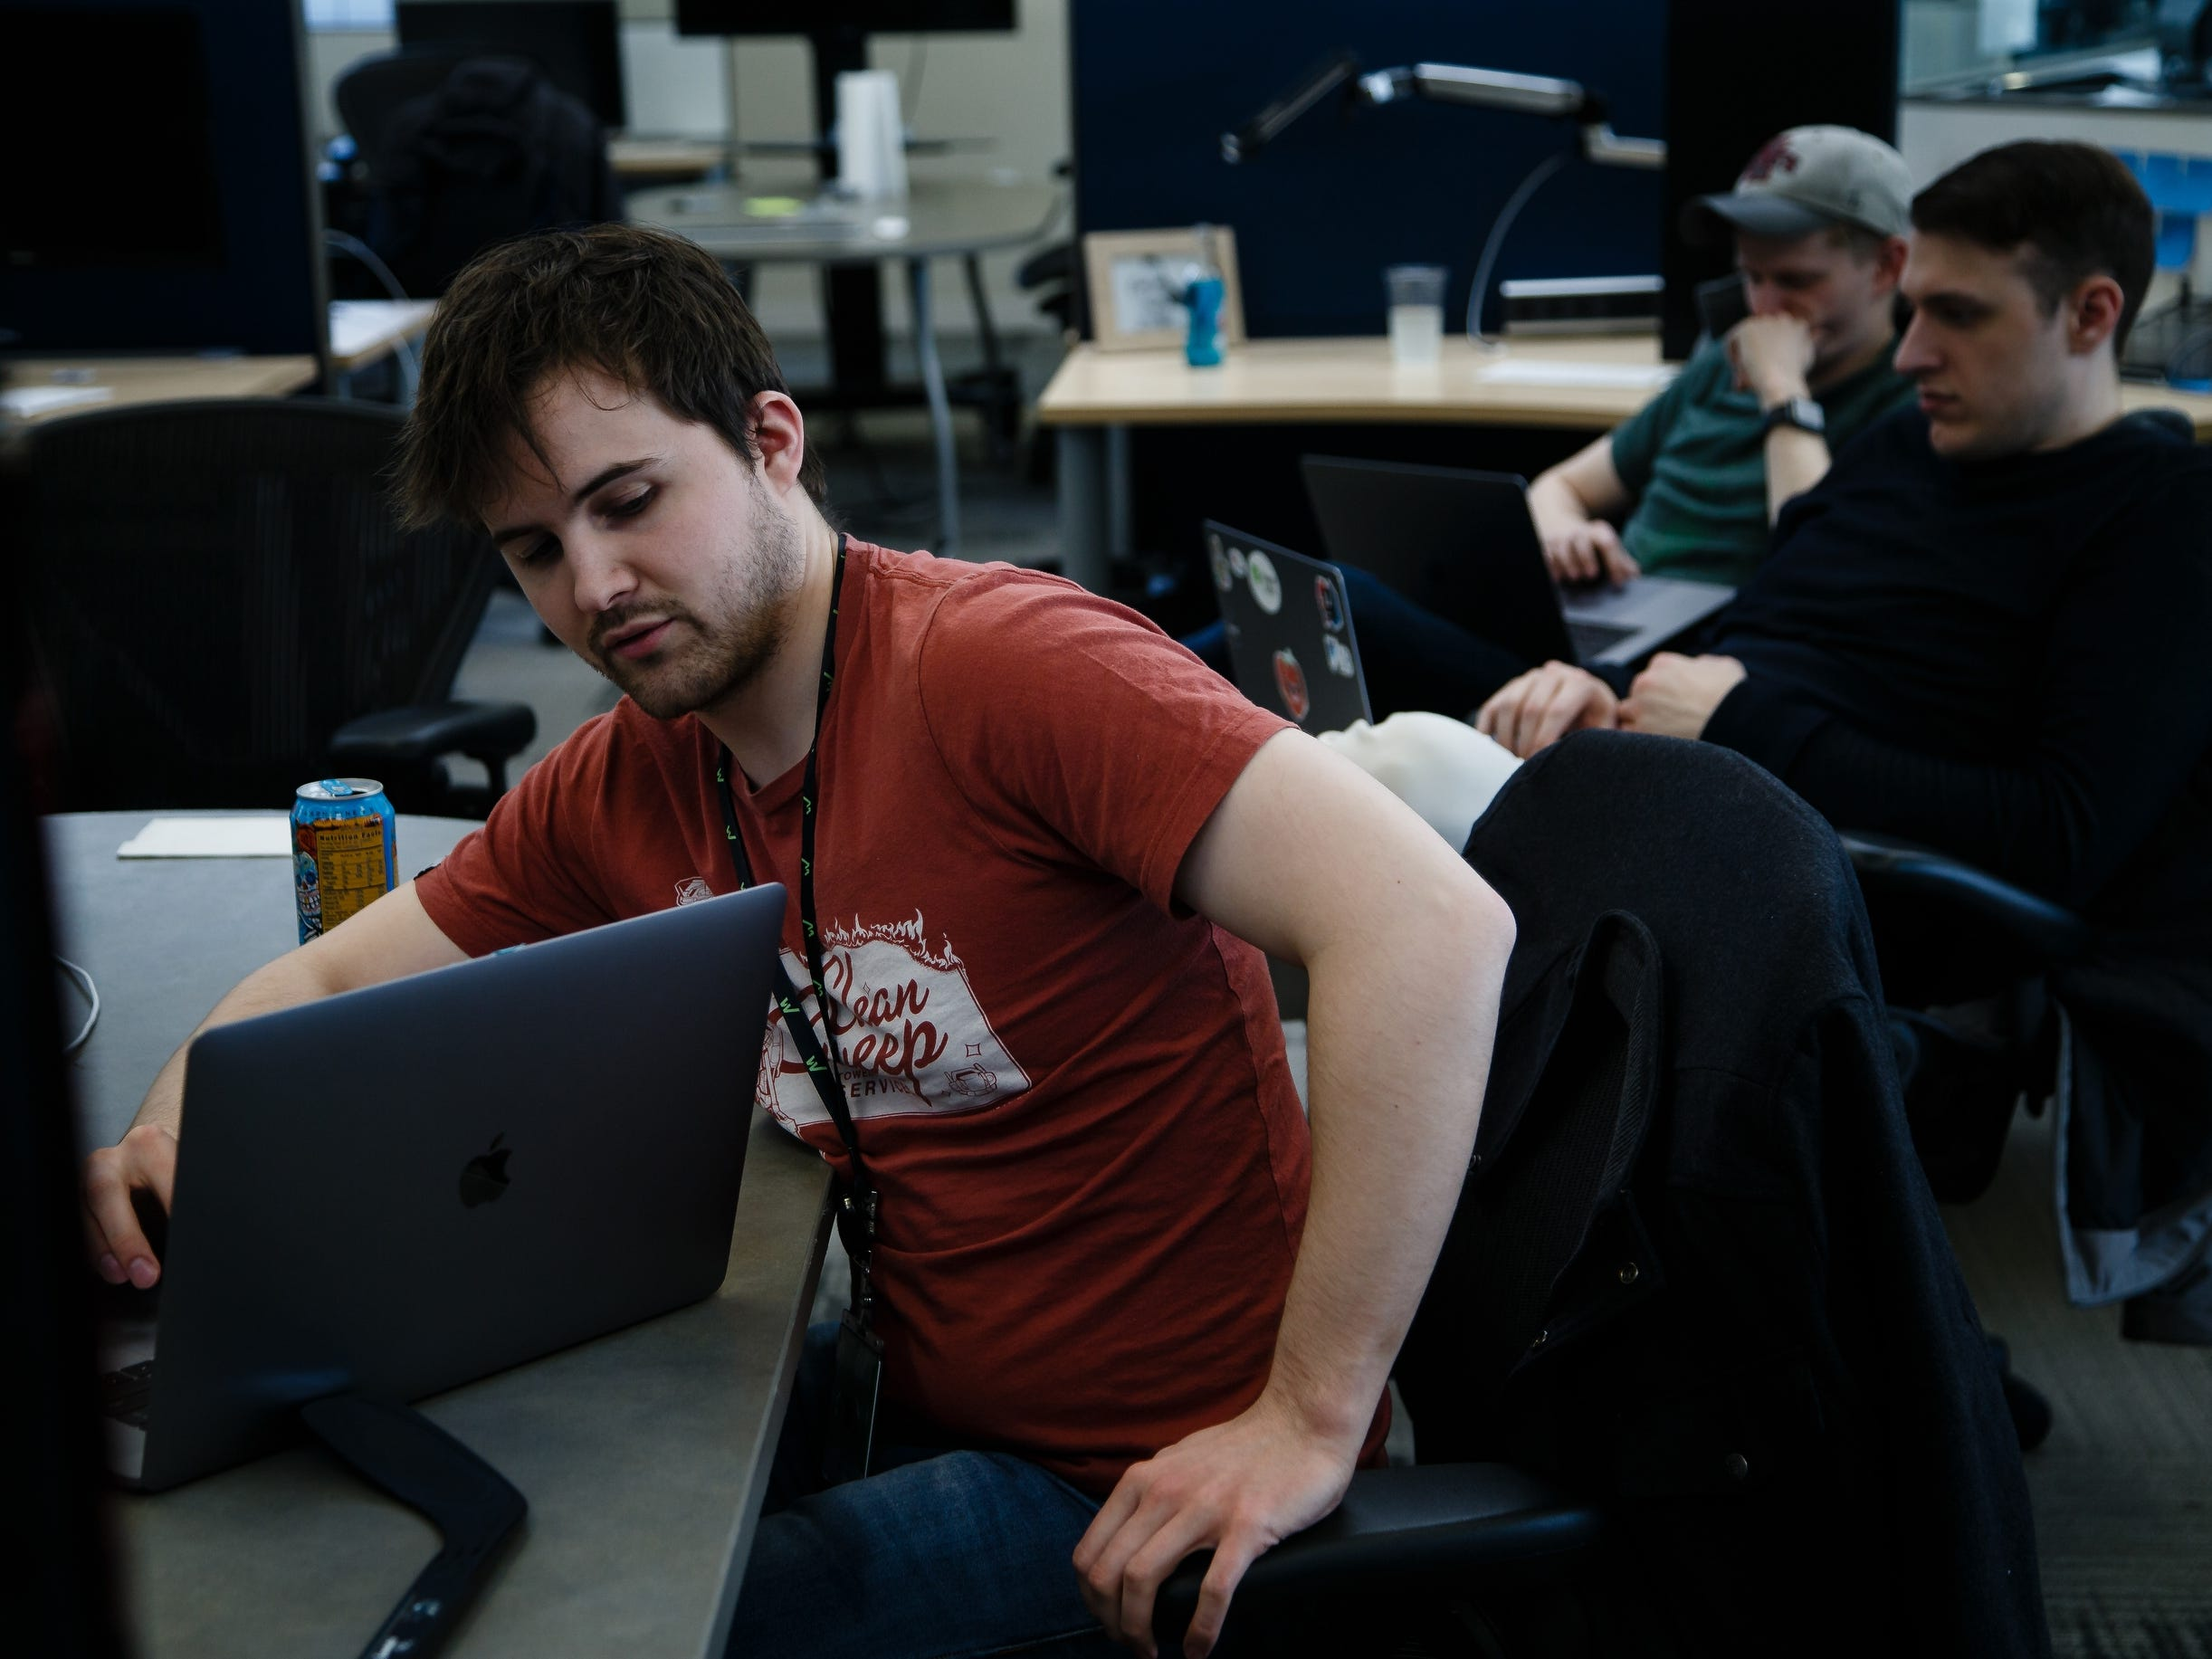 James Murphy of Ames, works on a project with a group at Workiva, a tech company in Ames on Friday, March 15, 2019.